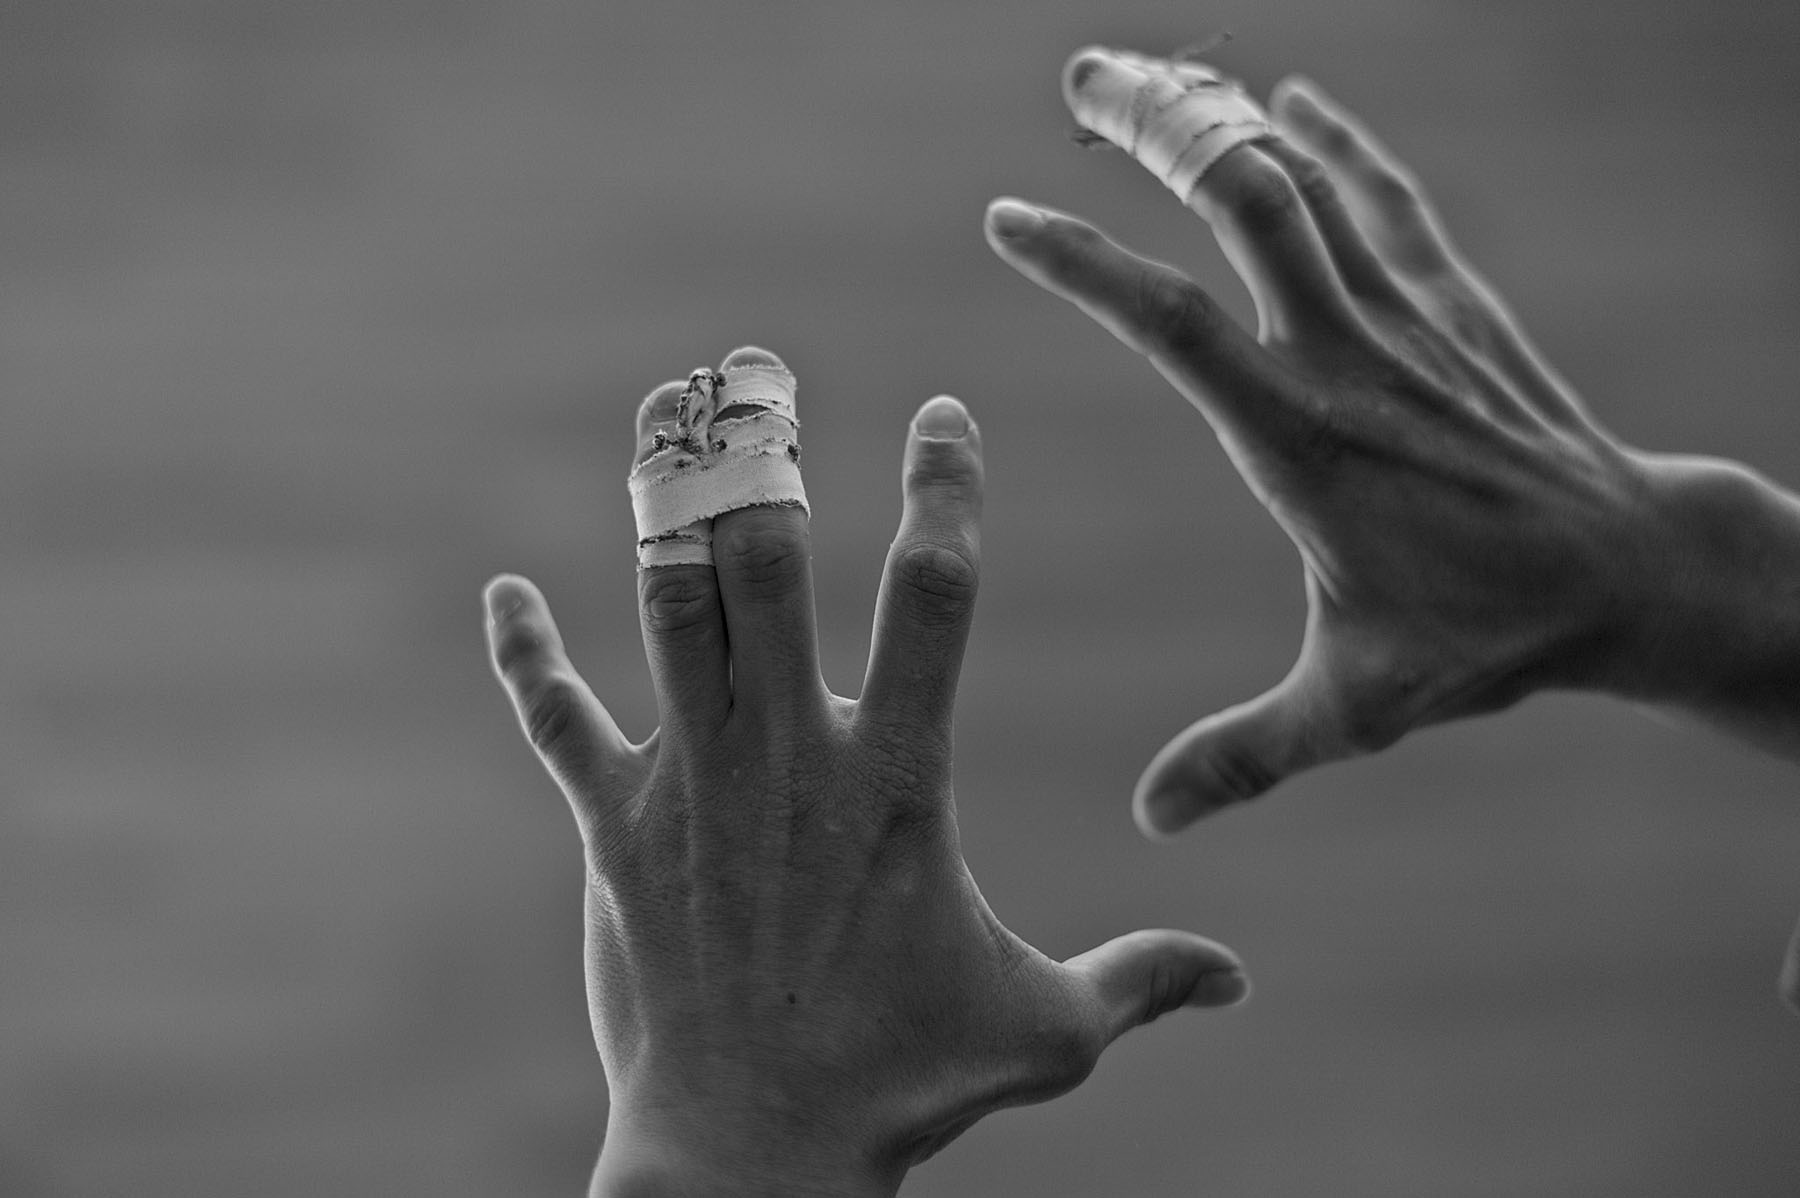 Sophie Cox, Judo team GB. Judo players tape their fingers and joint to try to minimise the damage.